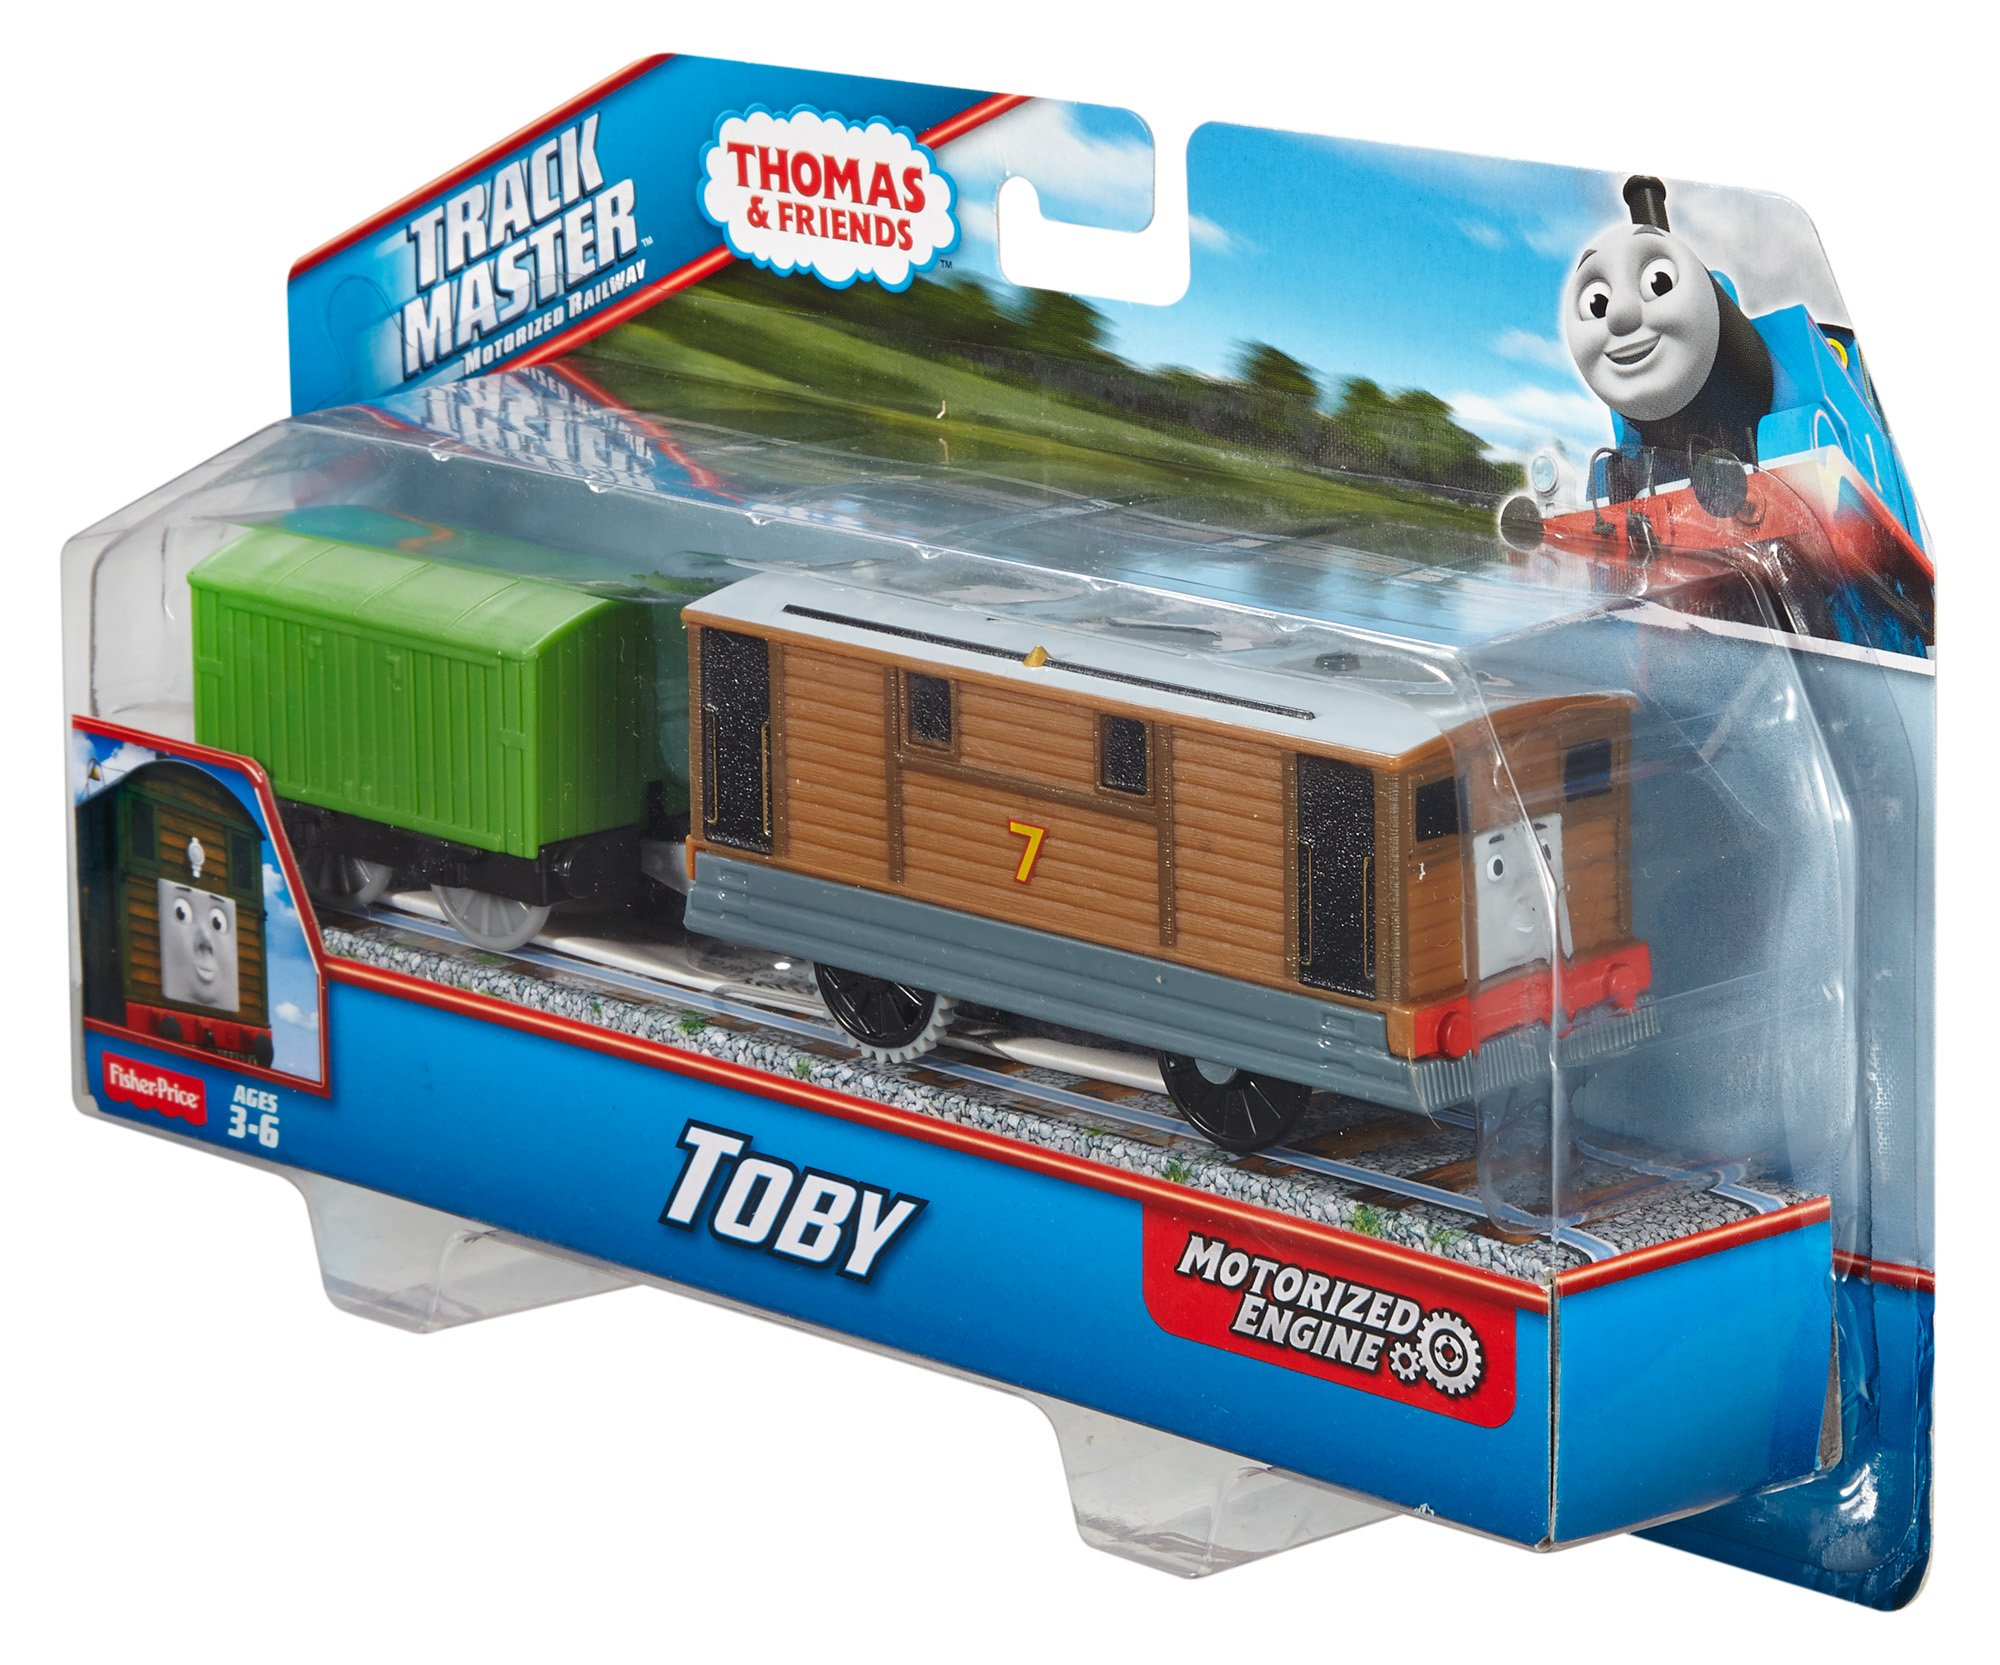 Thomas & Friends Fisher-Price TrackMaster, Motorized Toby Engine